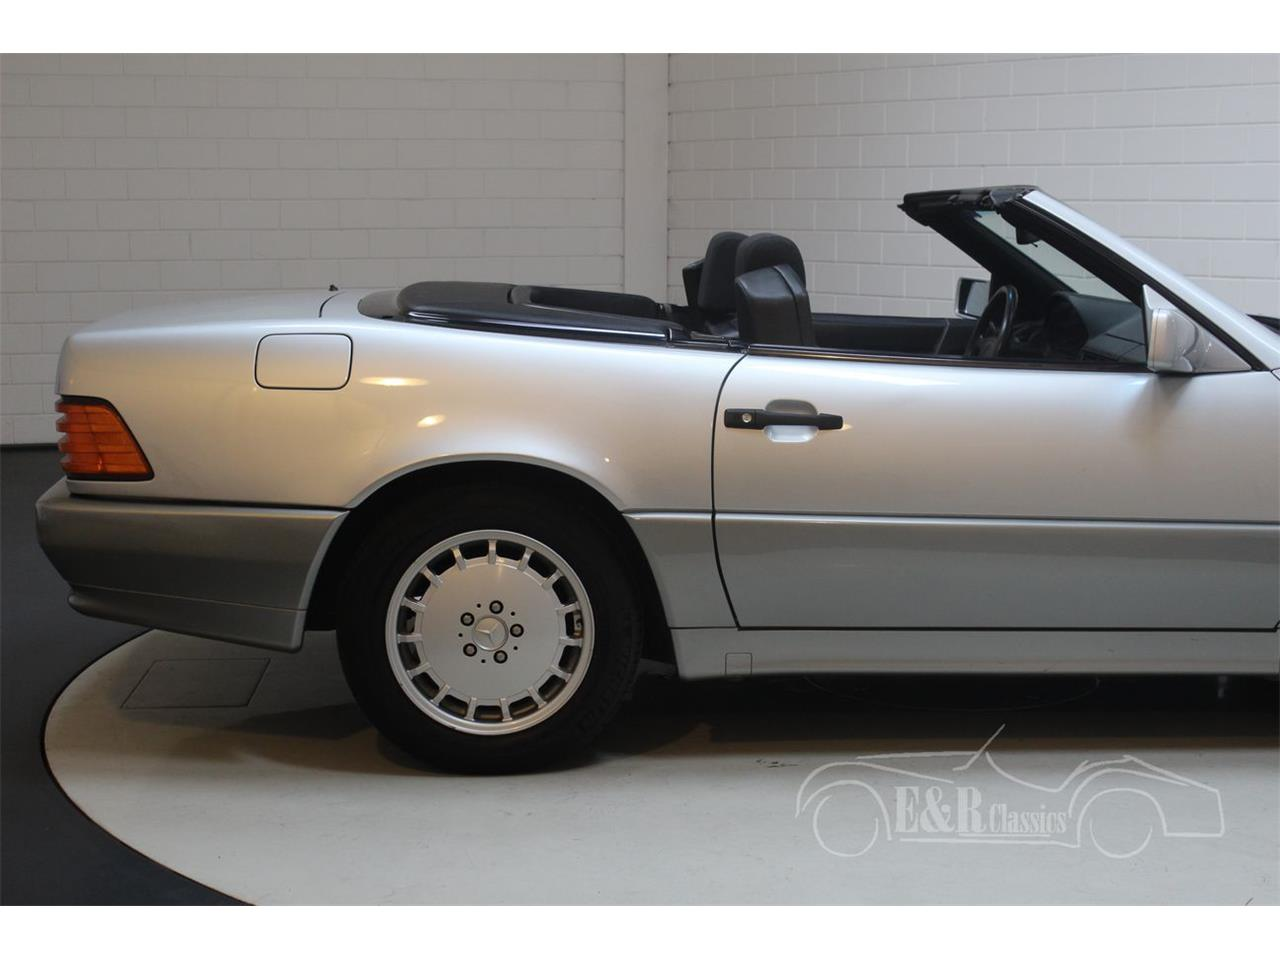 Large Picture of '91 500SL located in Waalwijk noord brabant - $22,350.00 - Q33D